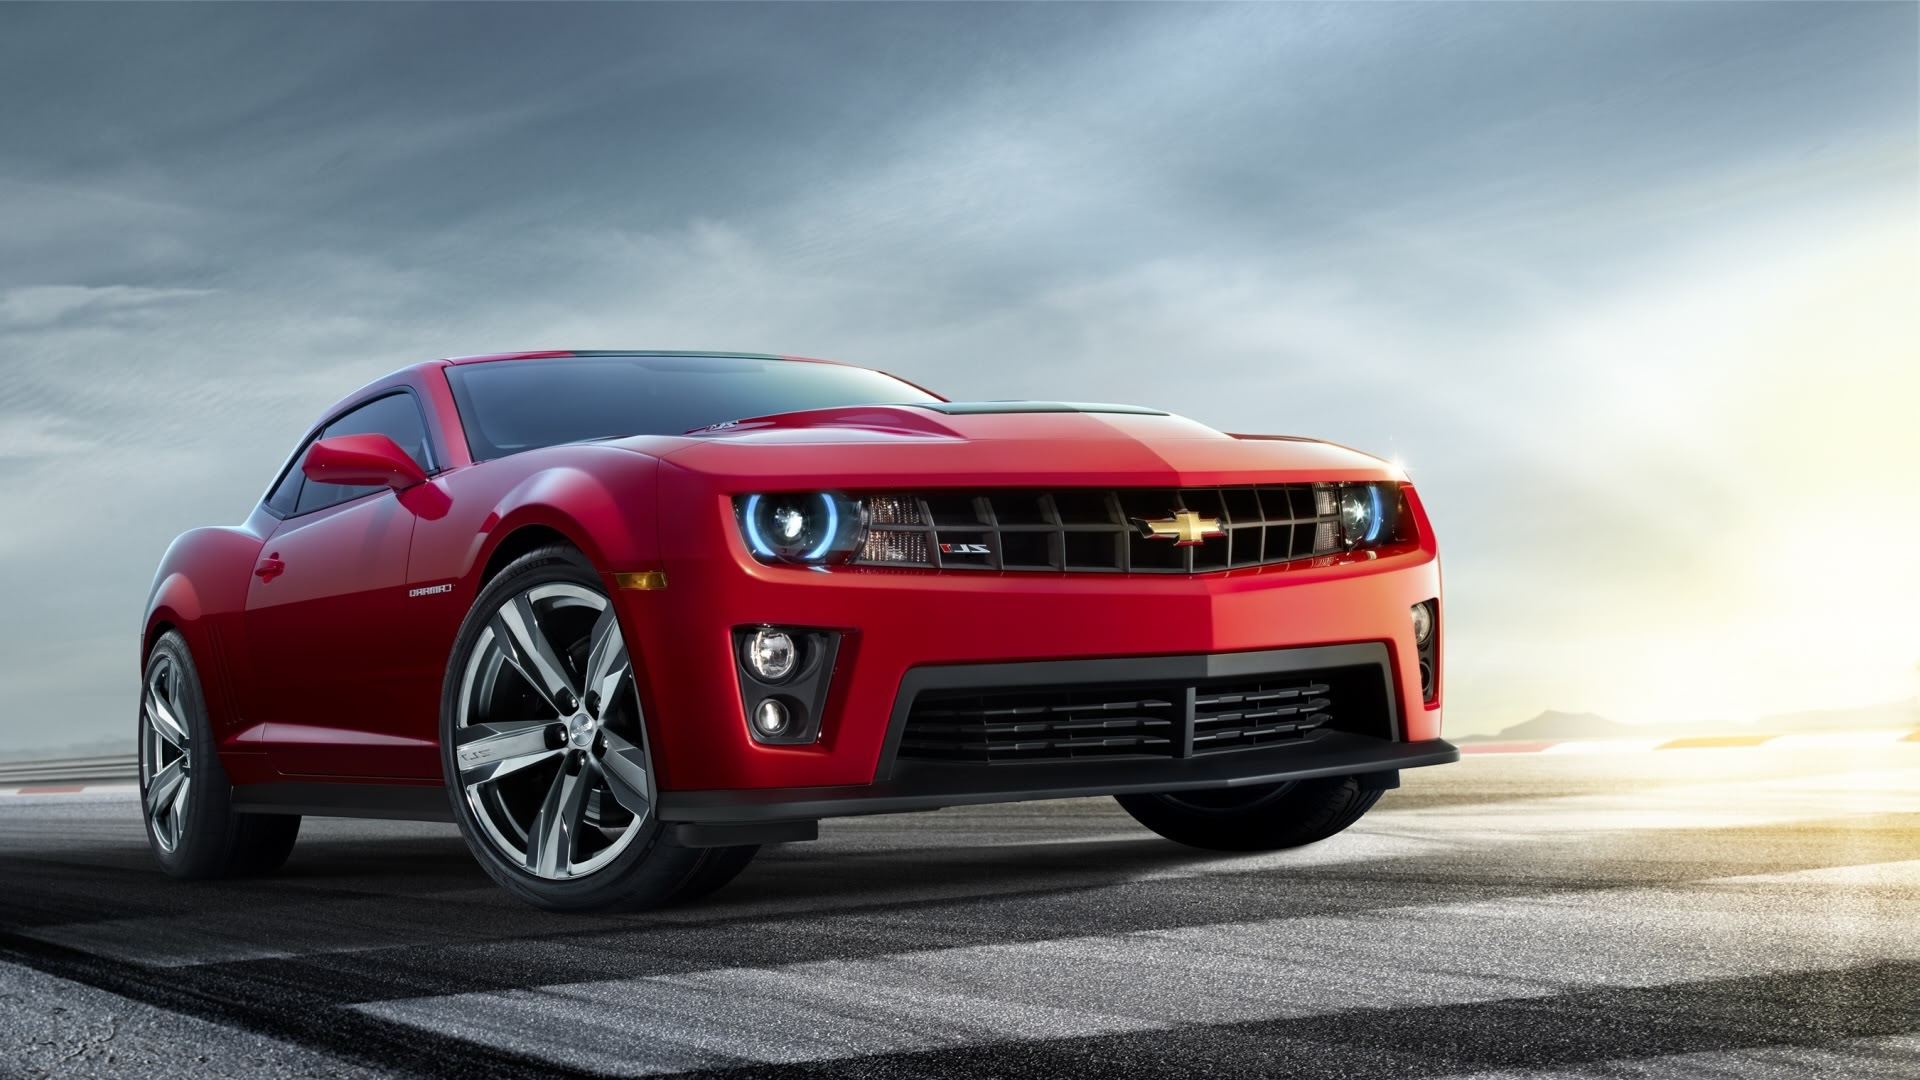 Chevrolet Camaro Wallpaper red wallpapers 1920px 1080px 2016 Camaro 1920x1080